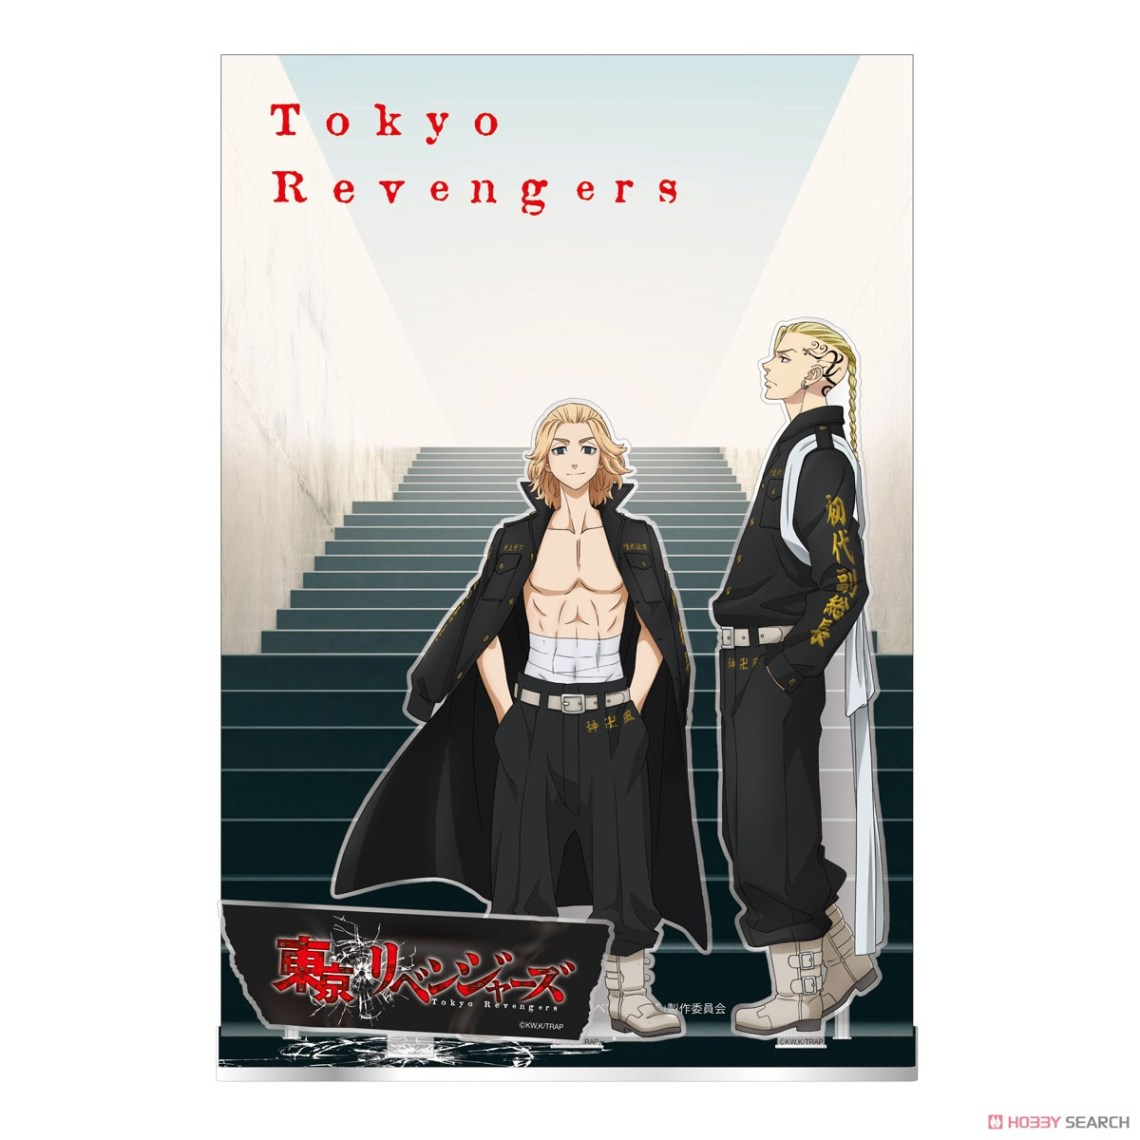 Tokyo Revengers Diorama Acrylic Stand Mikey Draken Anime Toy Hi Res Image List